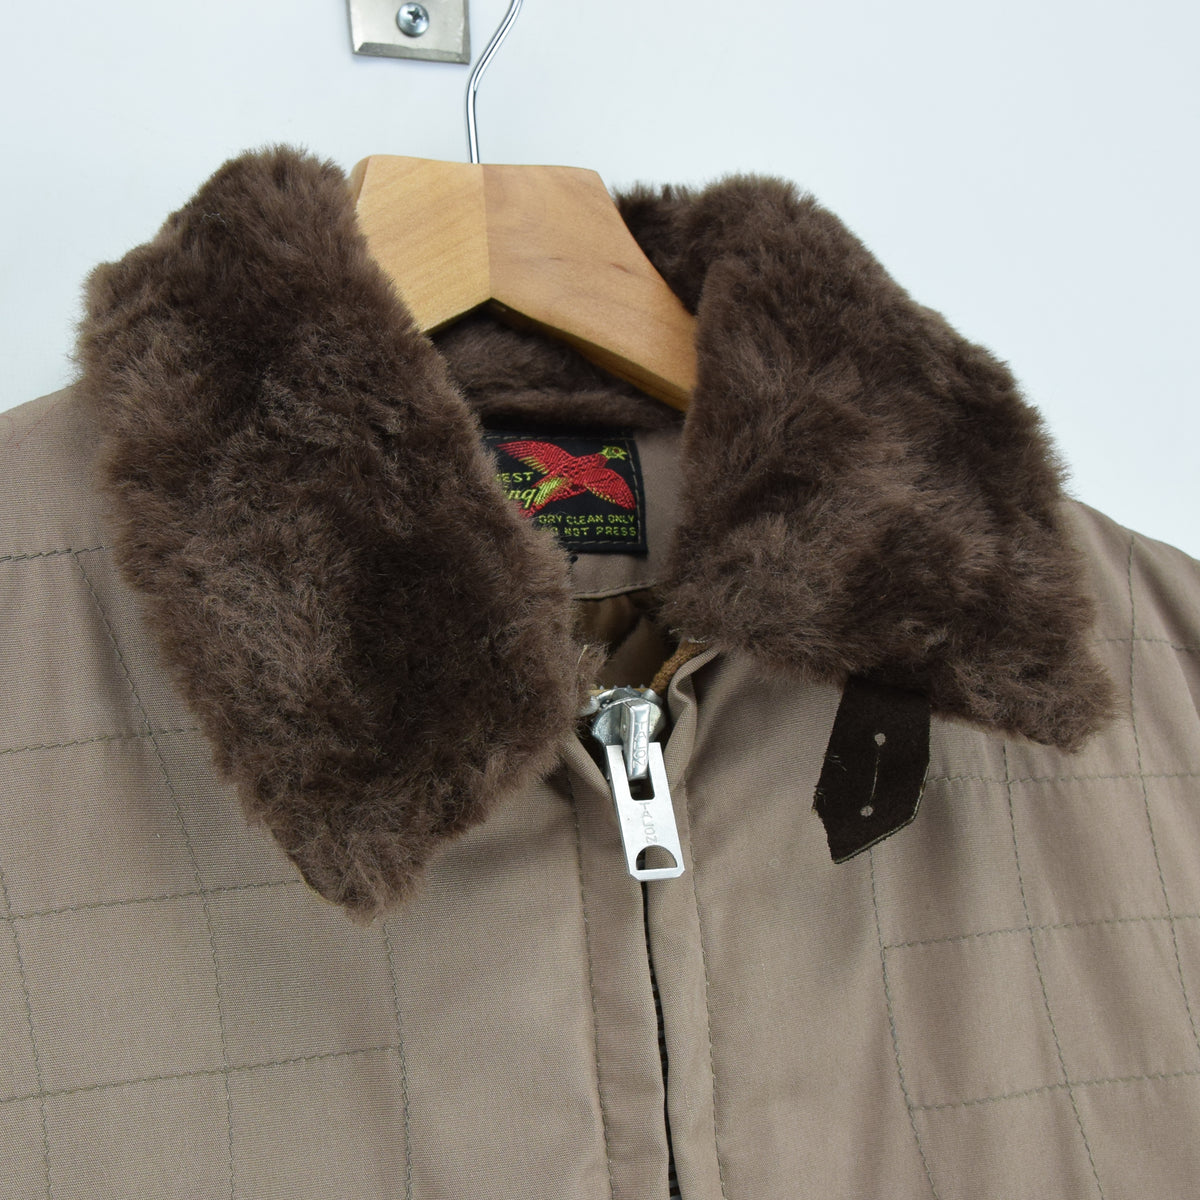 Vintage 70s 10-X Mfg Co USA Quilted Hunting Shooting Jacket Talon Zip XS / S collar